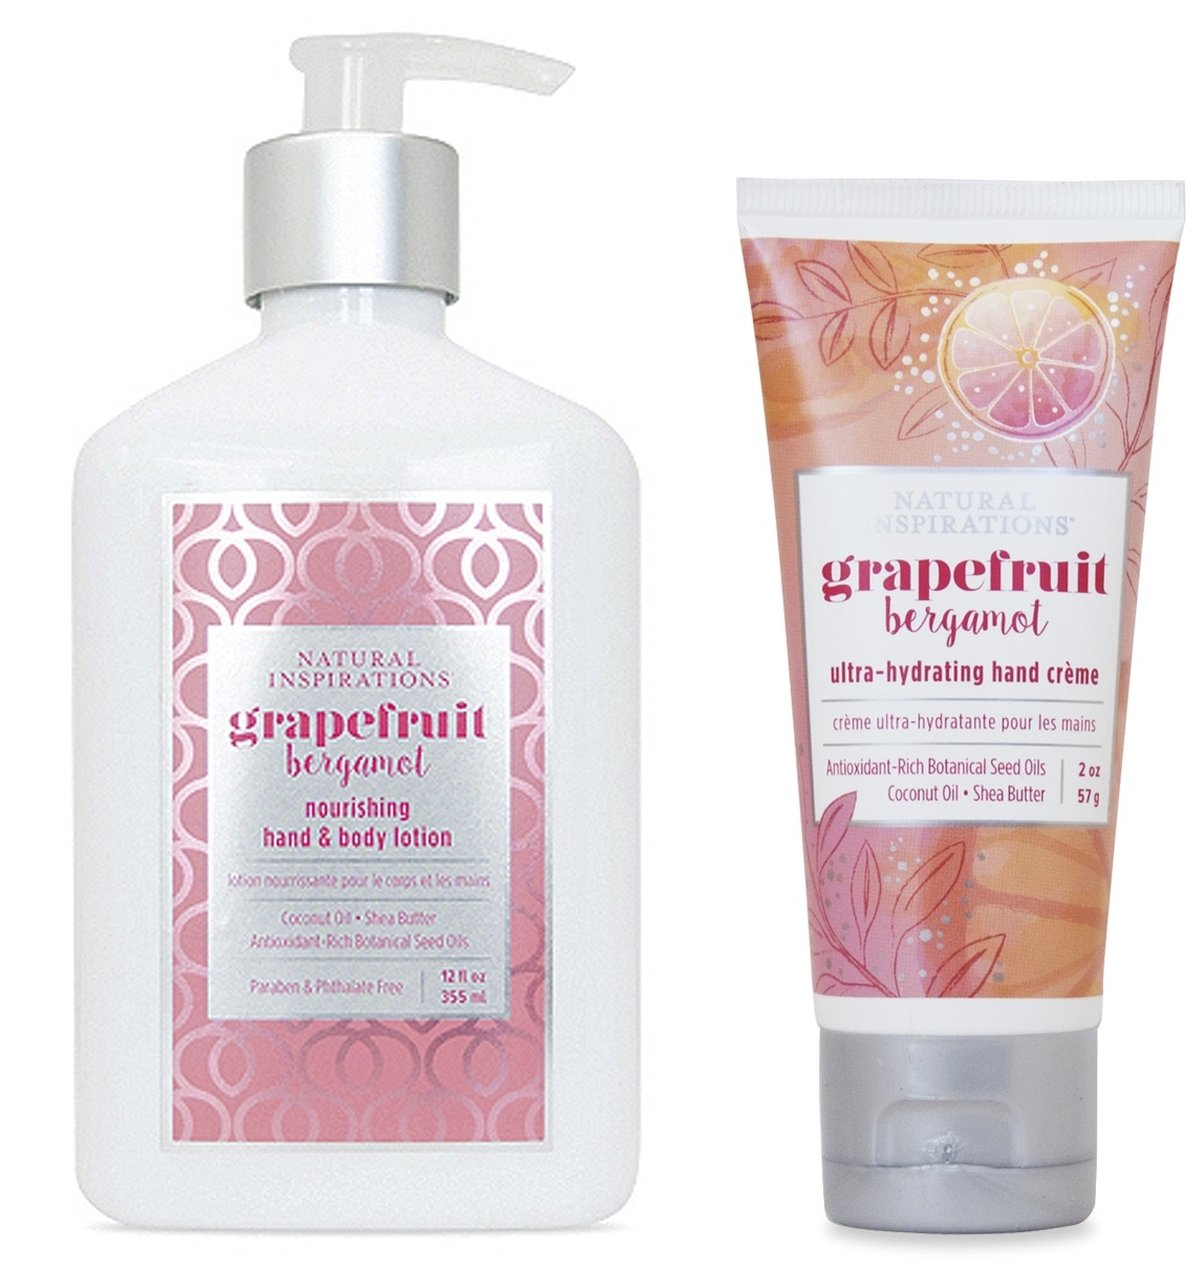 Natural Inspirations Hand & Body Lotion and Hand Creme Gift Set - Grapefruit Bergamot